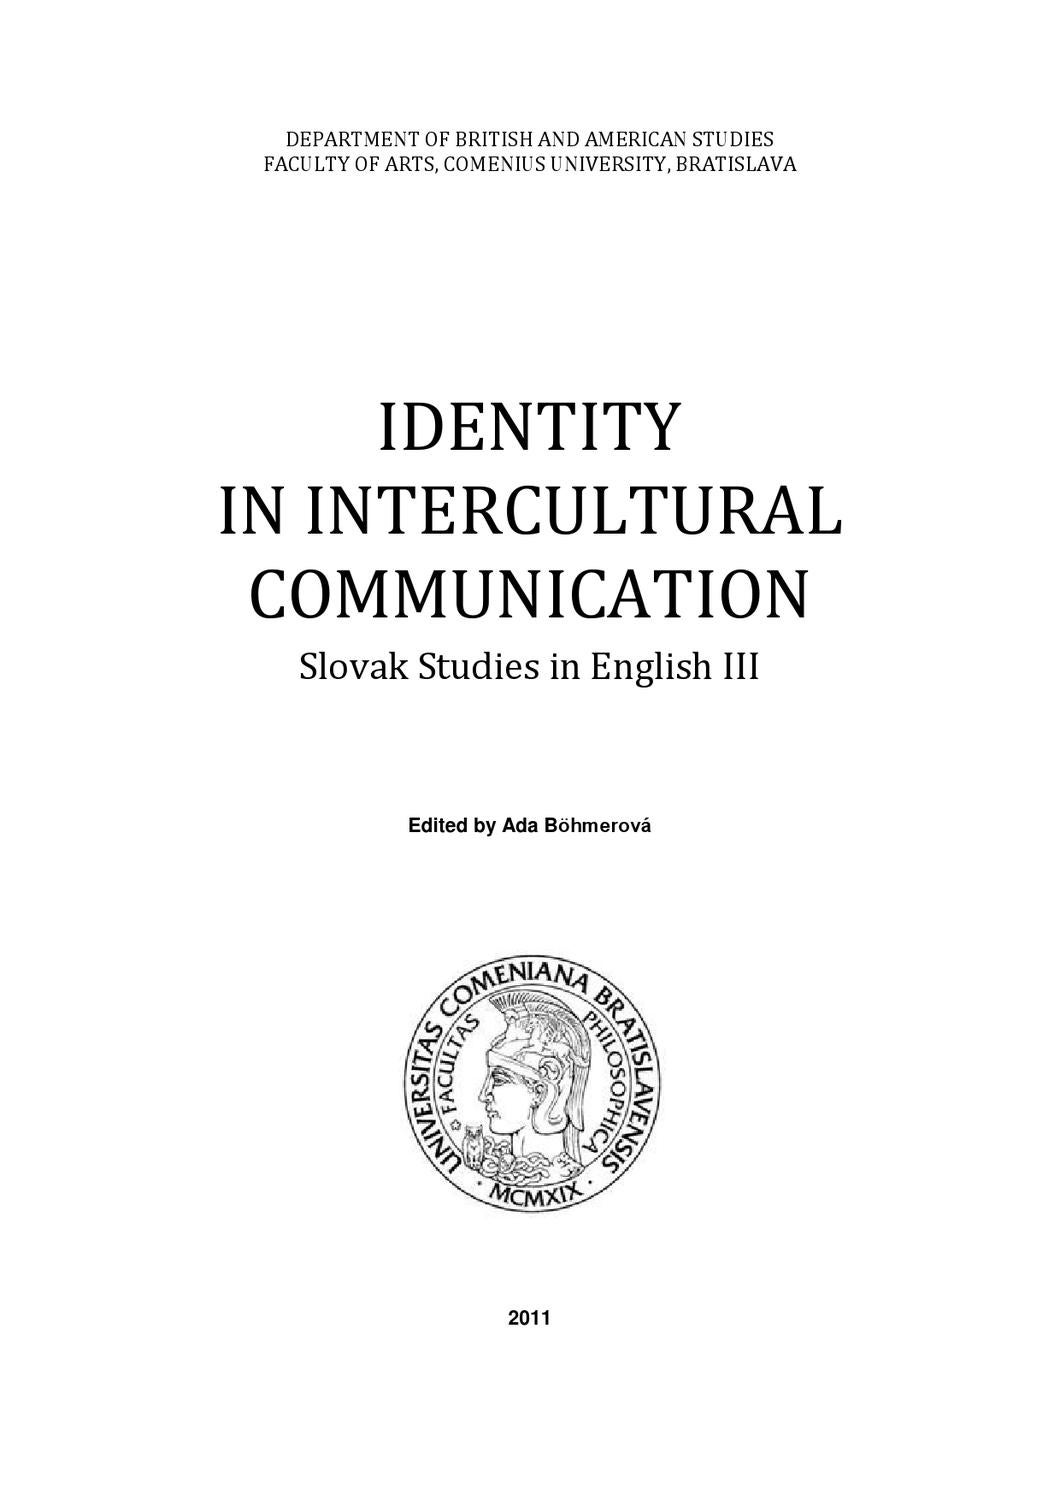 intercultural communication college essay Free cross-cultural communication papers, essays, and research papers   cross-cultural communication on college campuses - time cultures in the.